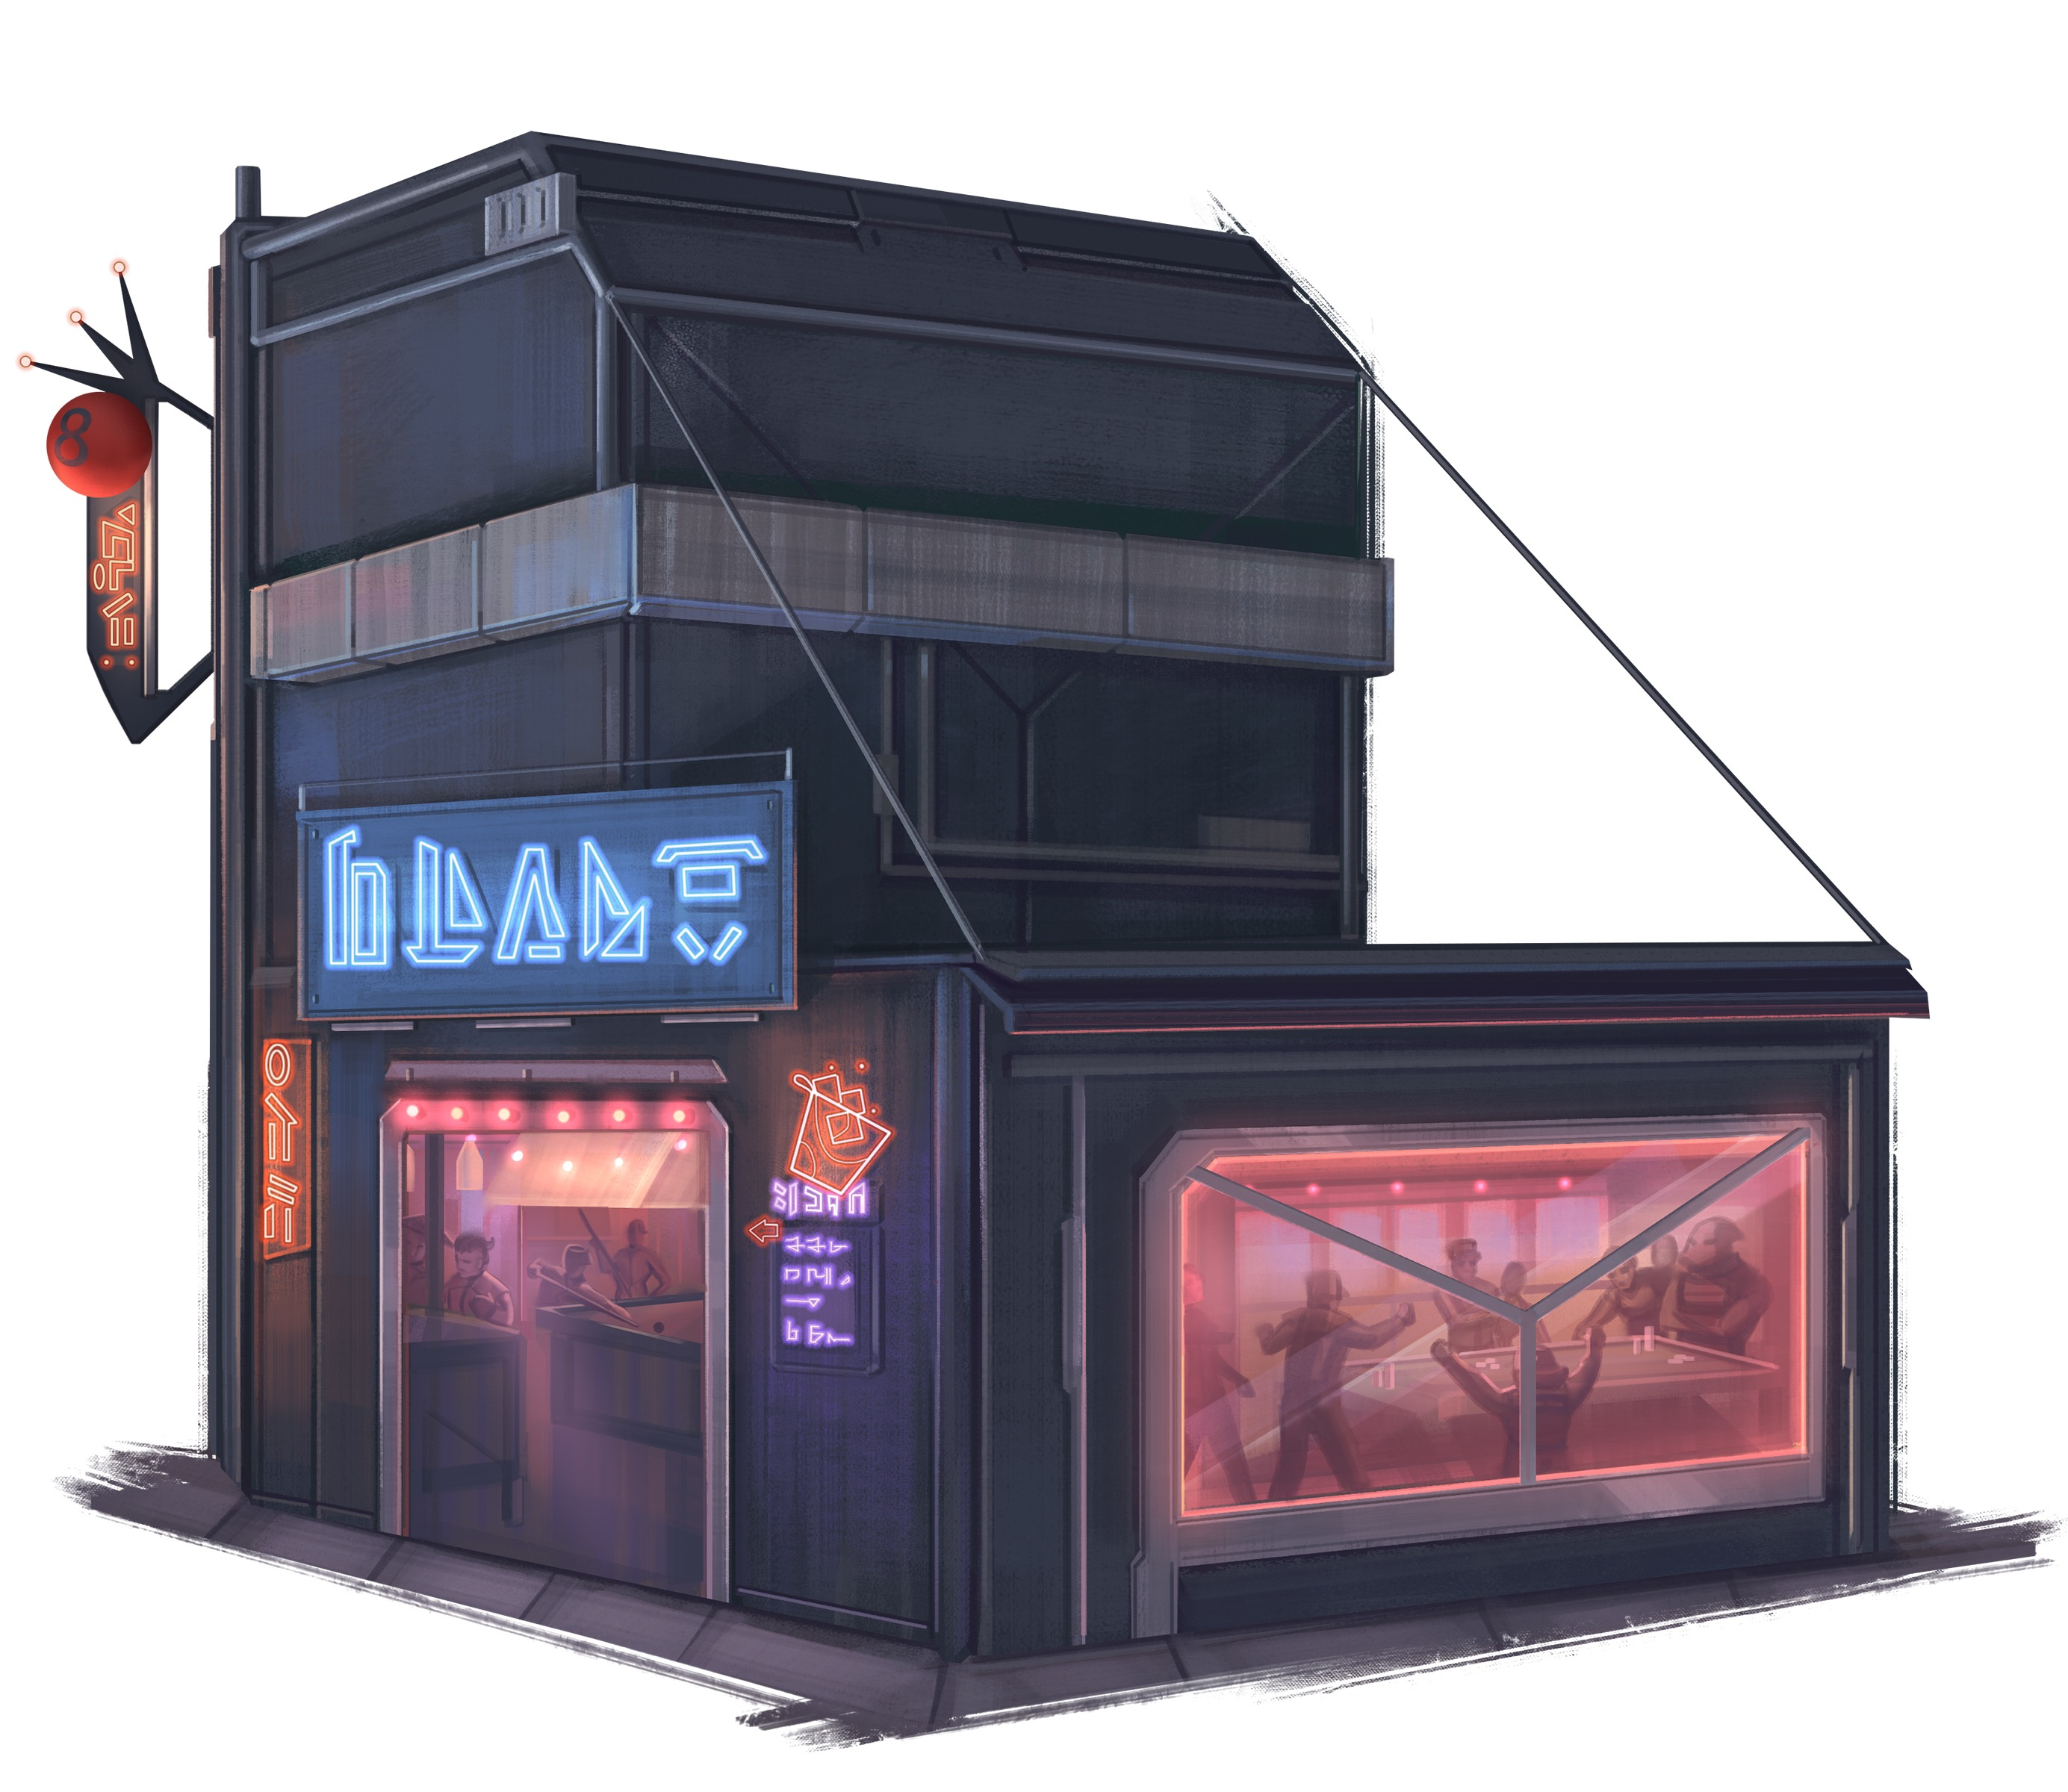 a bar Starfinder agents use as a hangout